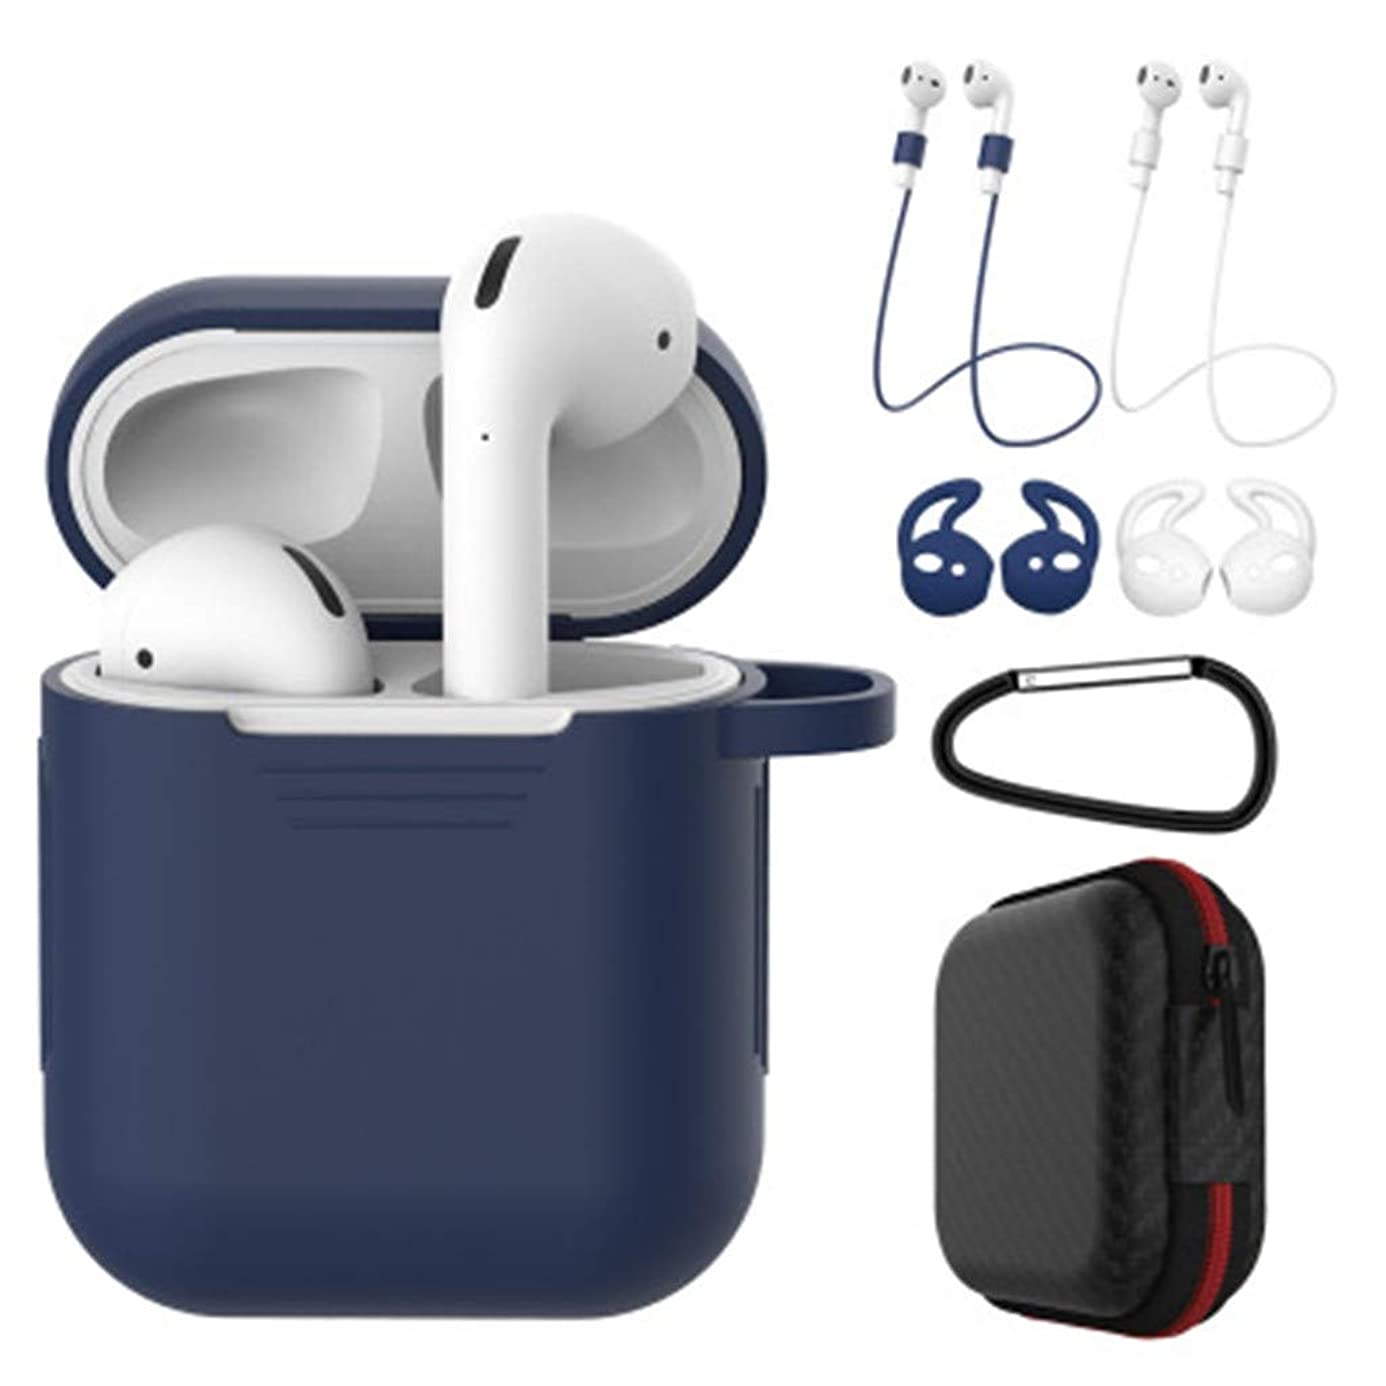 7 in 1 Airpods Protective Case Accessories Kits, Silicone Cover for Apple Airpod(Front LED Not Visible) with 2X Anti-Lost Rope/1X Anti-Hanging Buckle/2X Earbuds/1X Headset Package